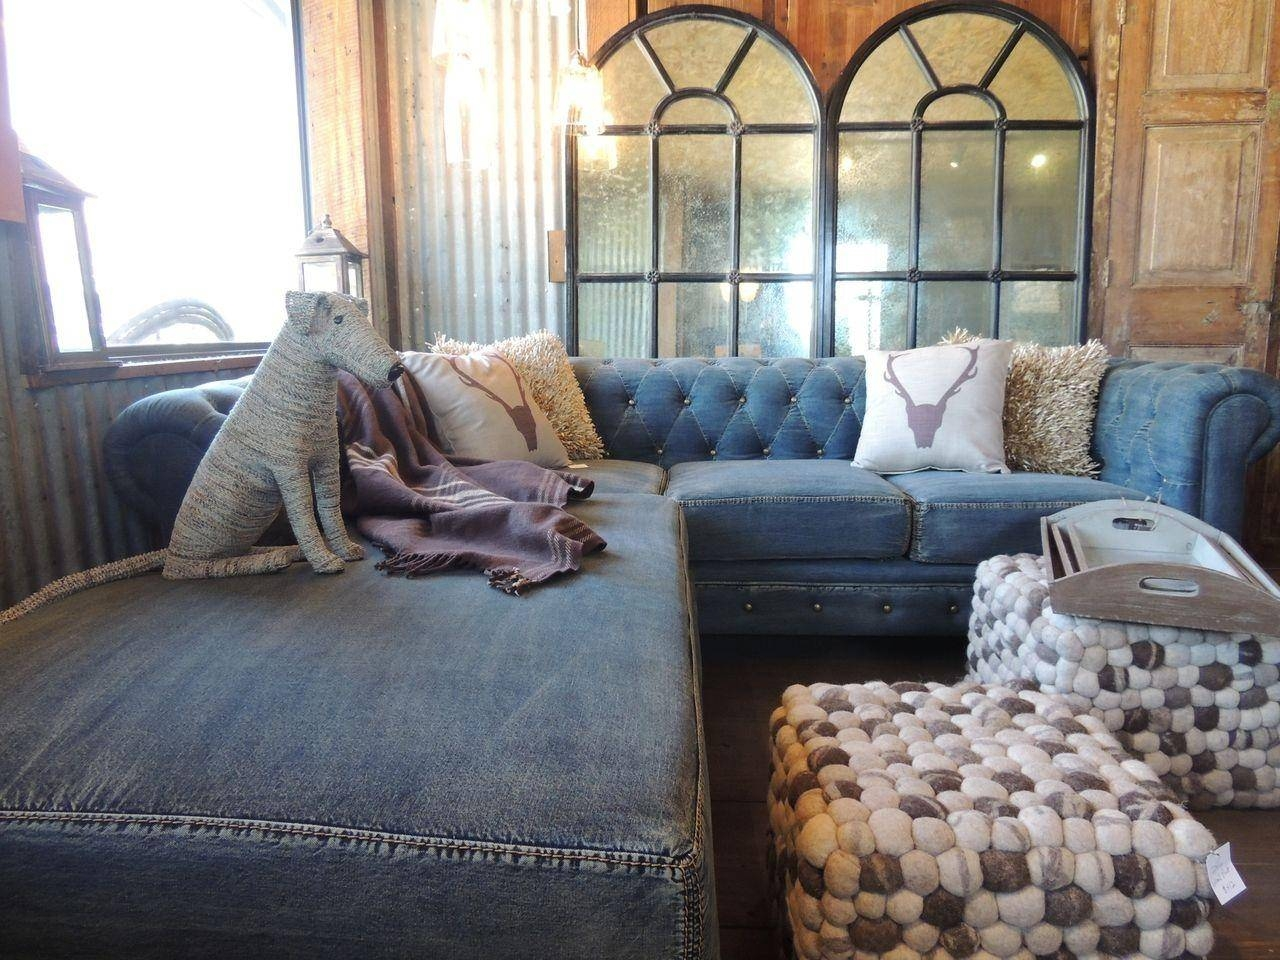 20 Collection Of Denim Sofa Slipcovers | Sofa Ideas throughout Denim Sofa Slipcovers (Image 1 of 15)